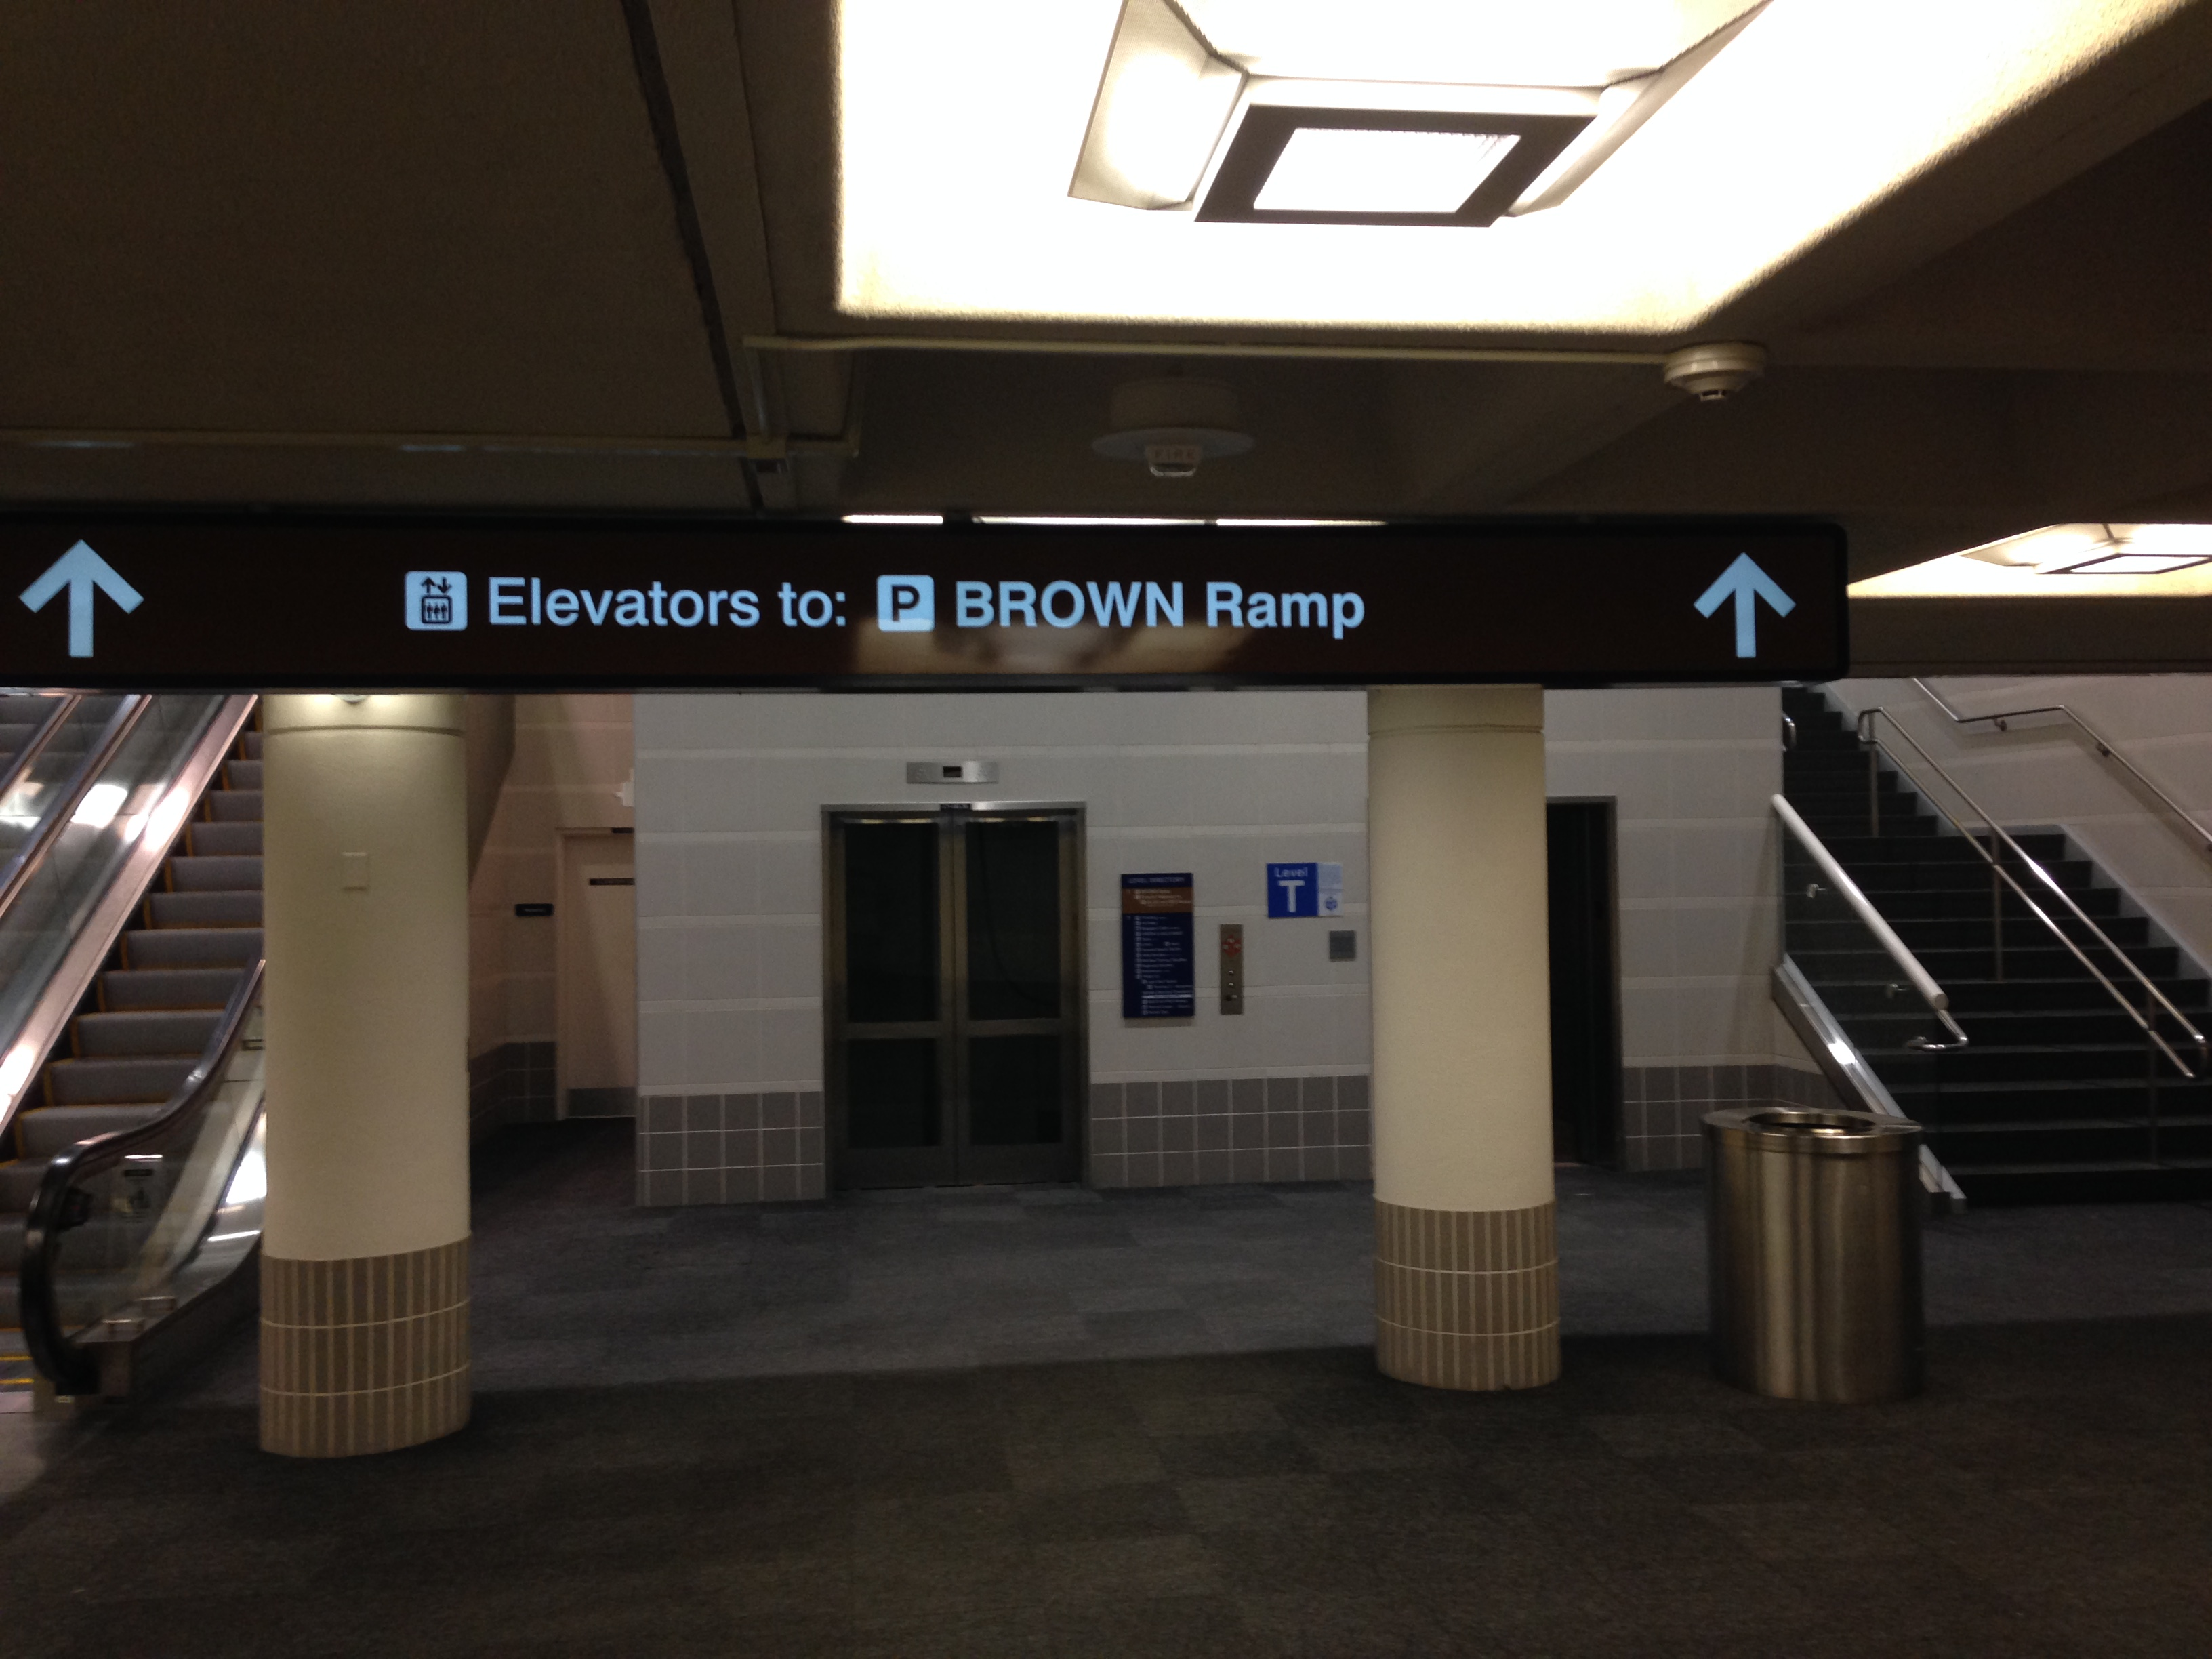 Elevators to: Brown Ramp